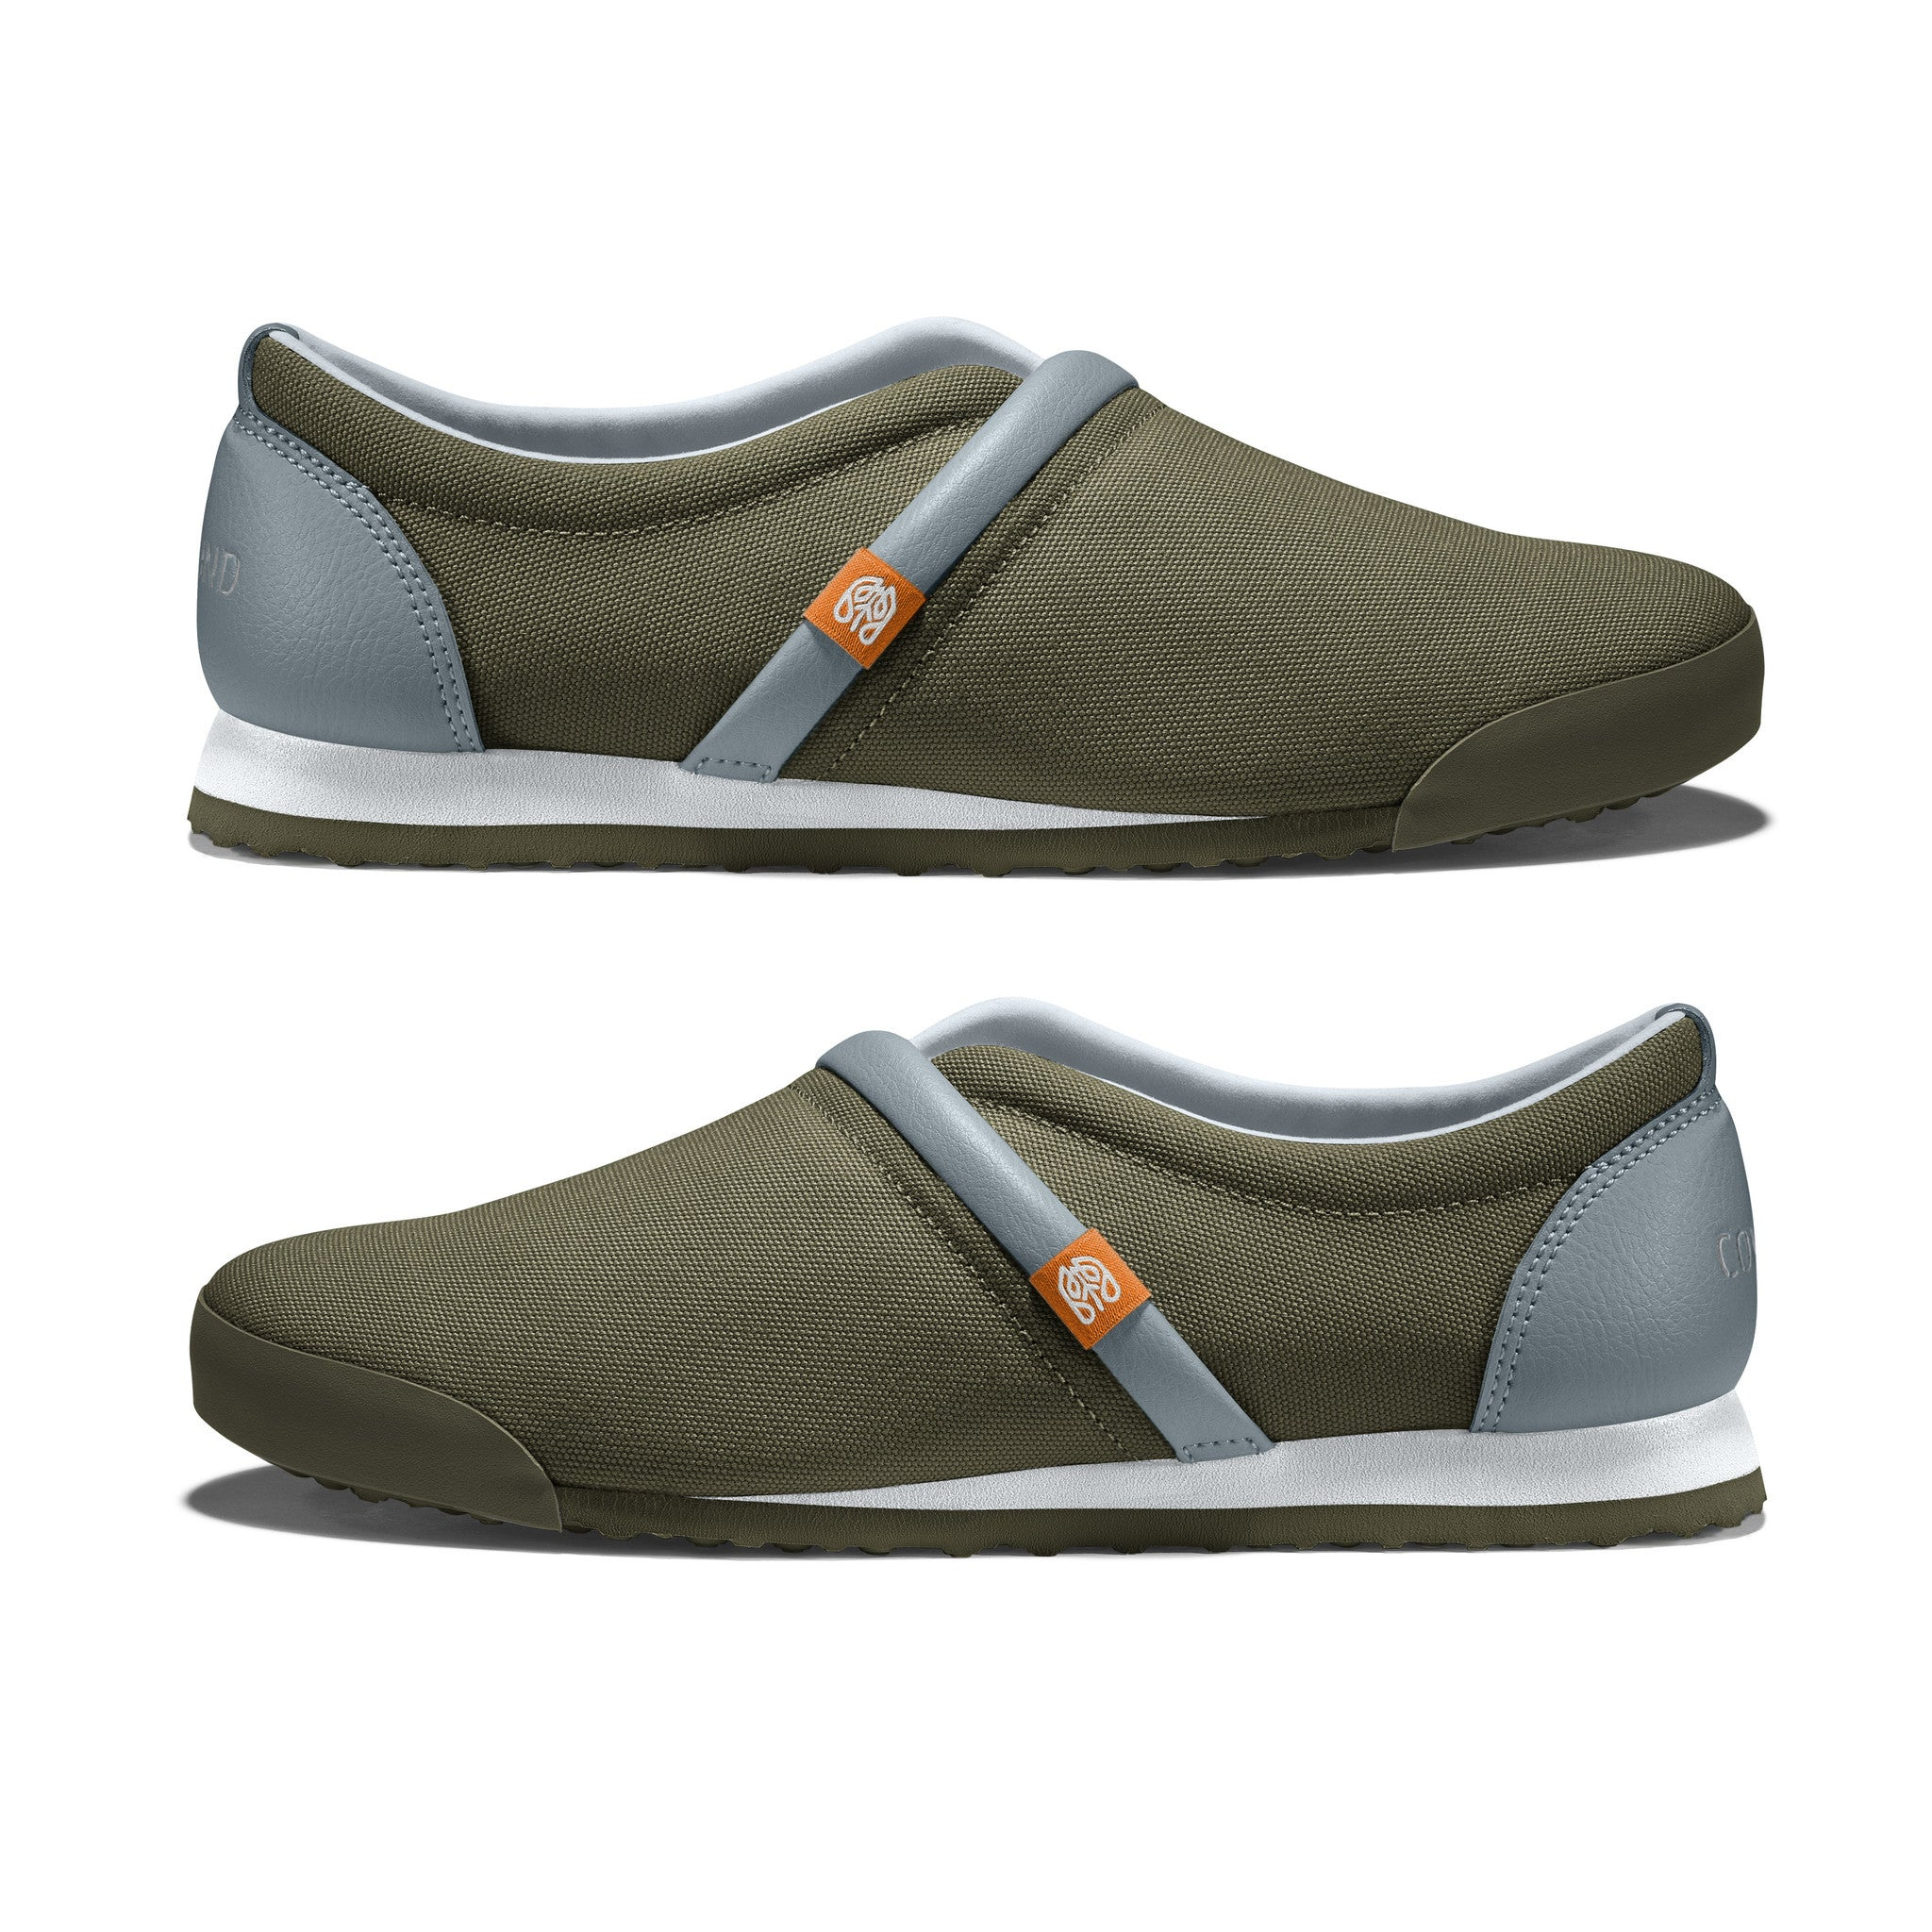 Military_Olive - Common Ground Footwear Shoes Side View